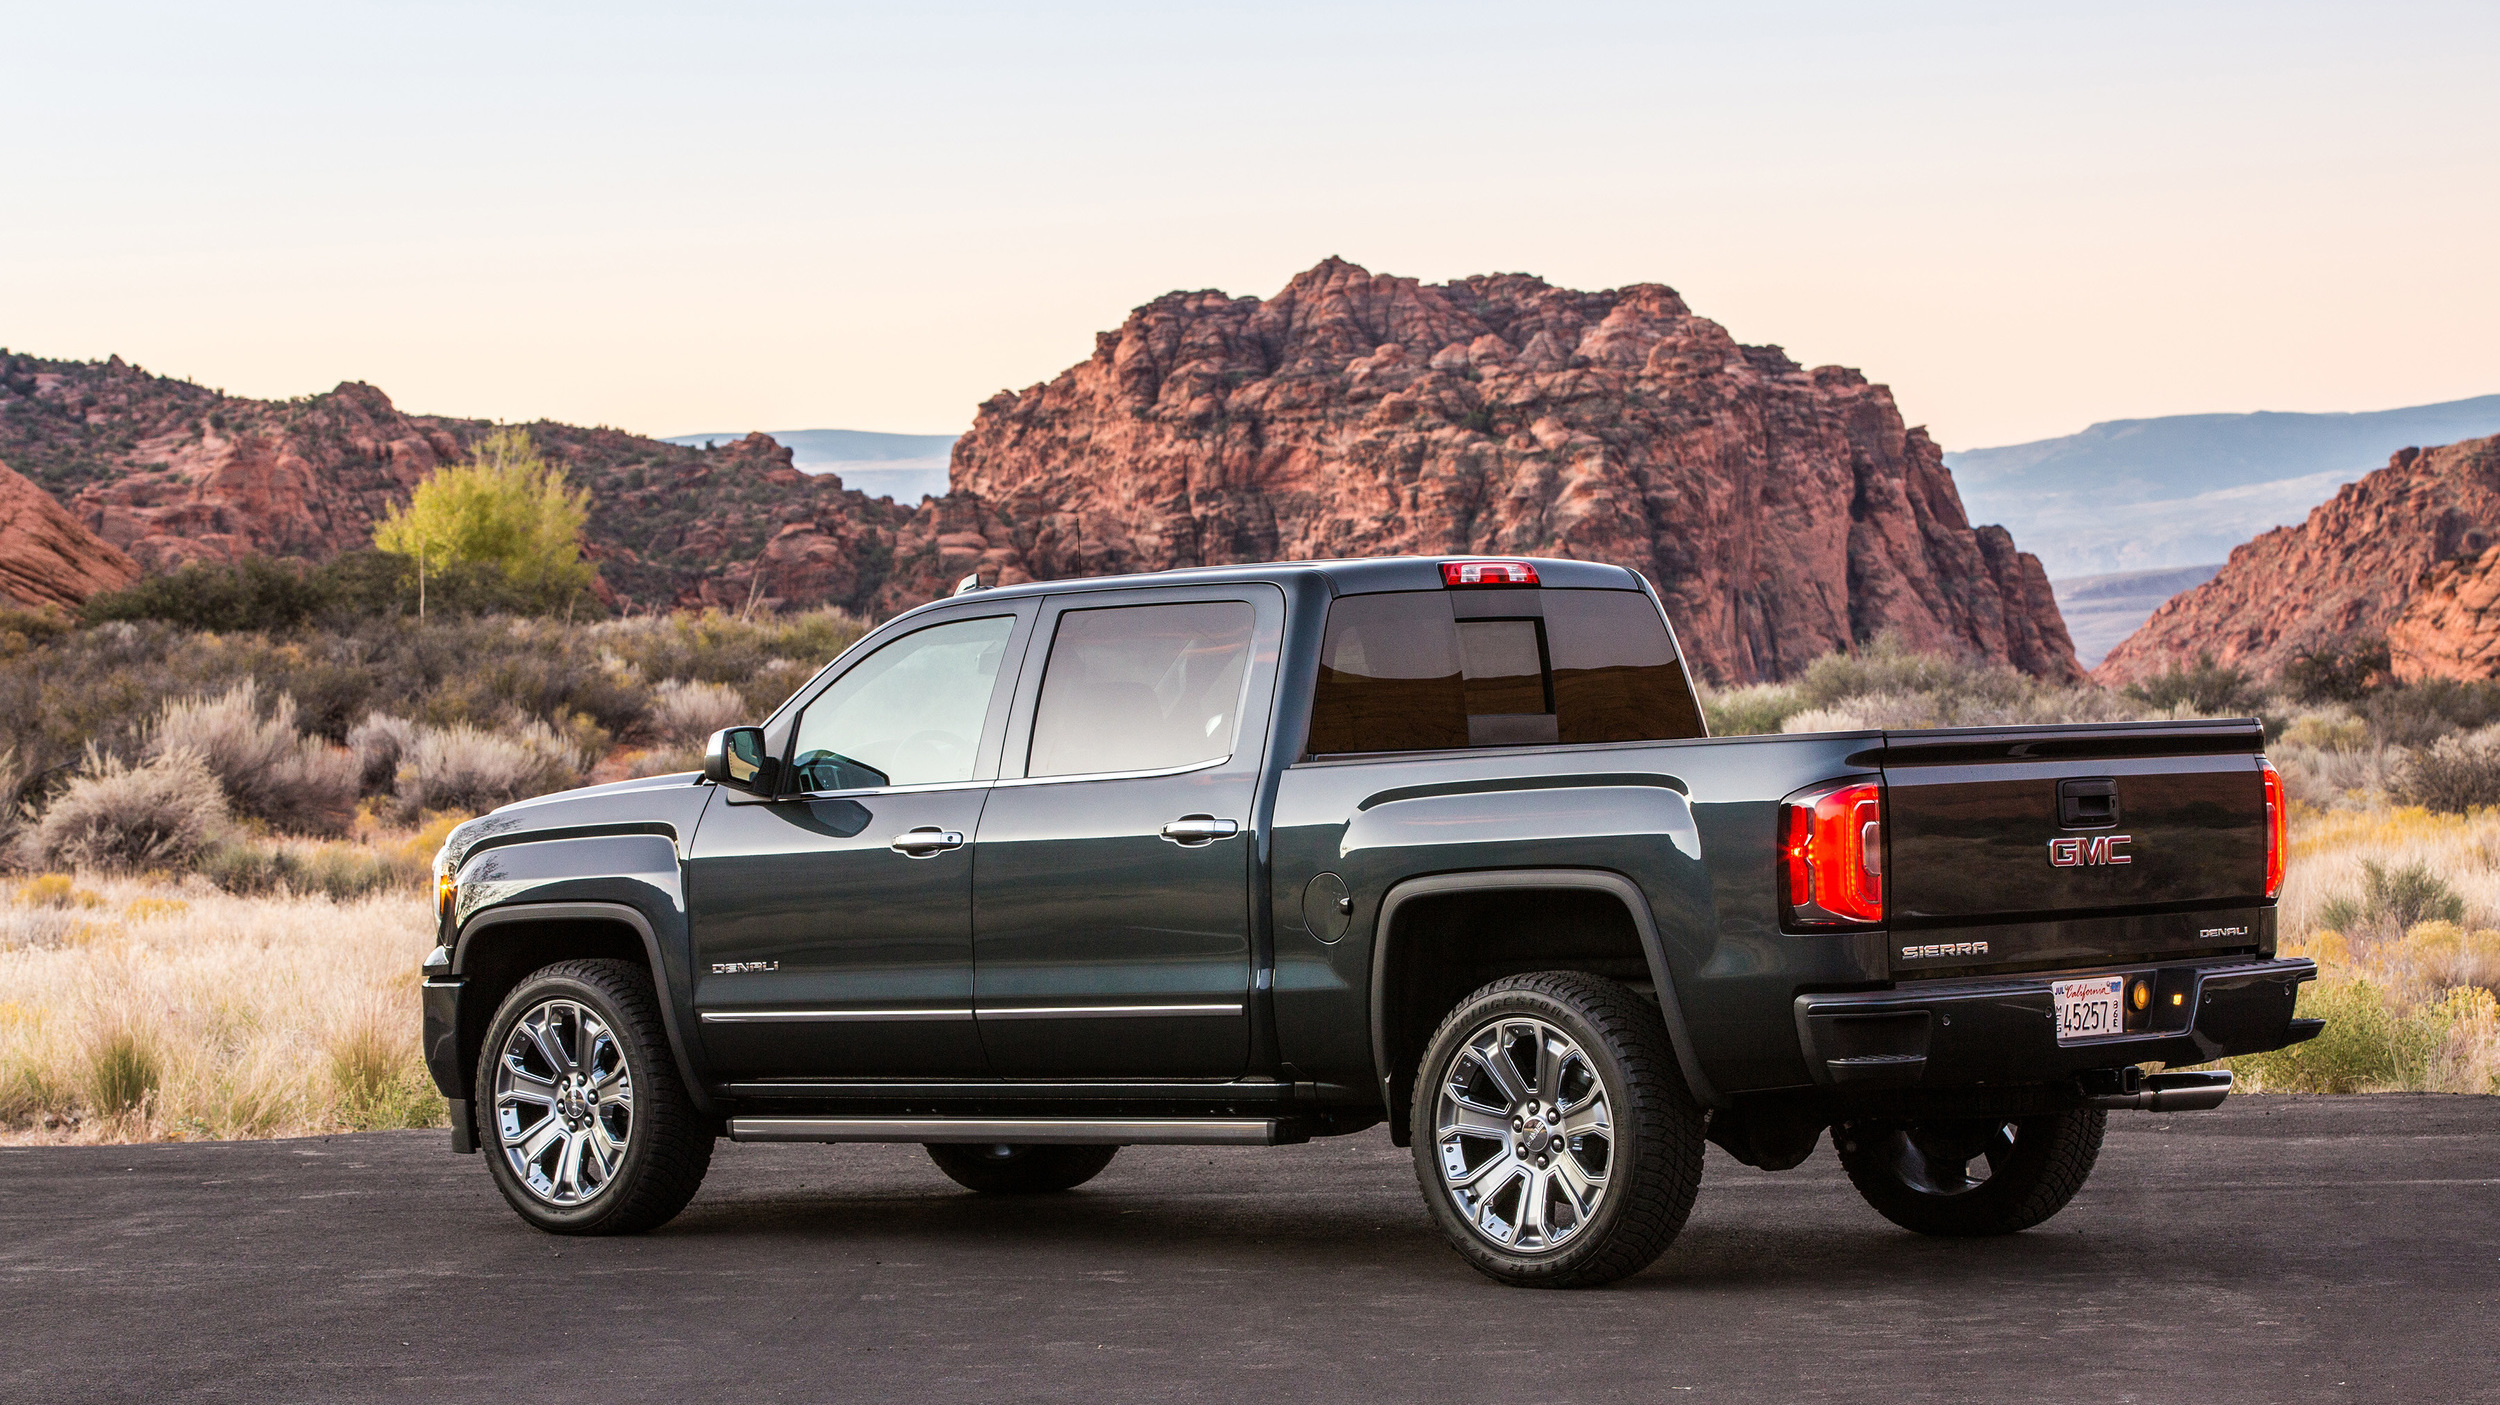 Commercial Truck Values >> The 2018 GMC Sierra Denali 1500 is the sister truck to the ...